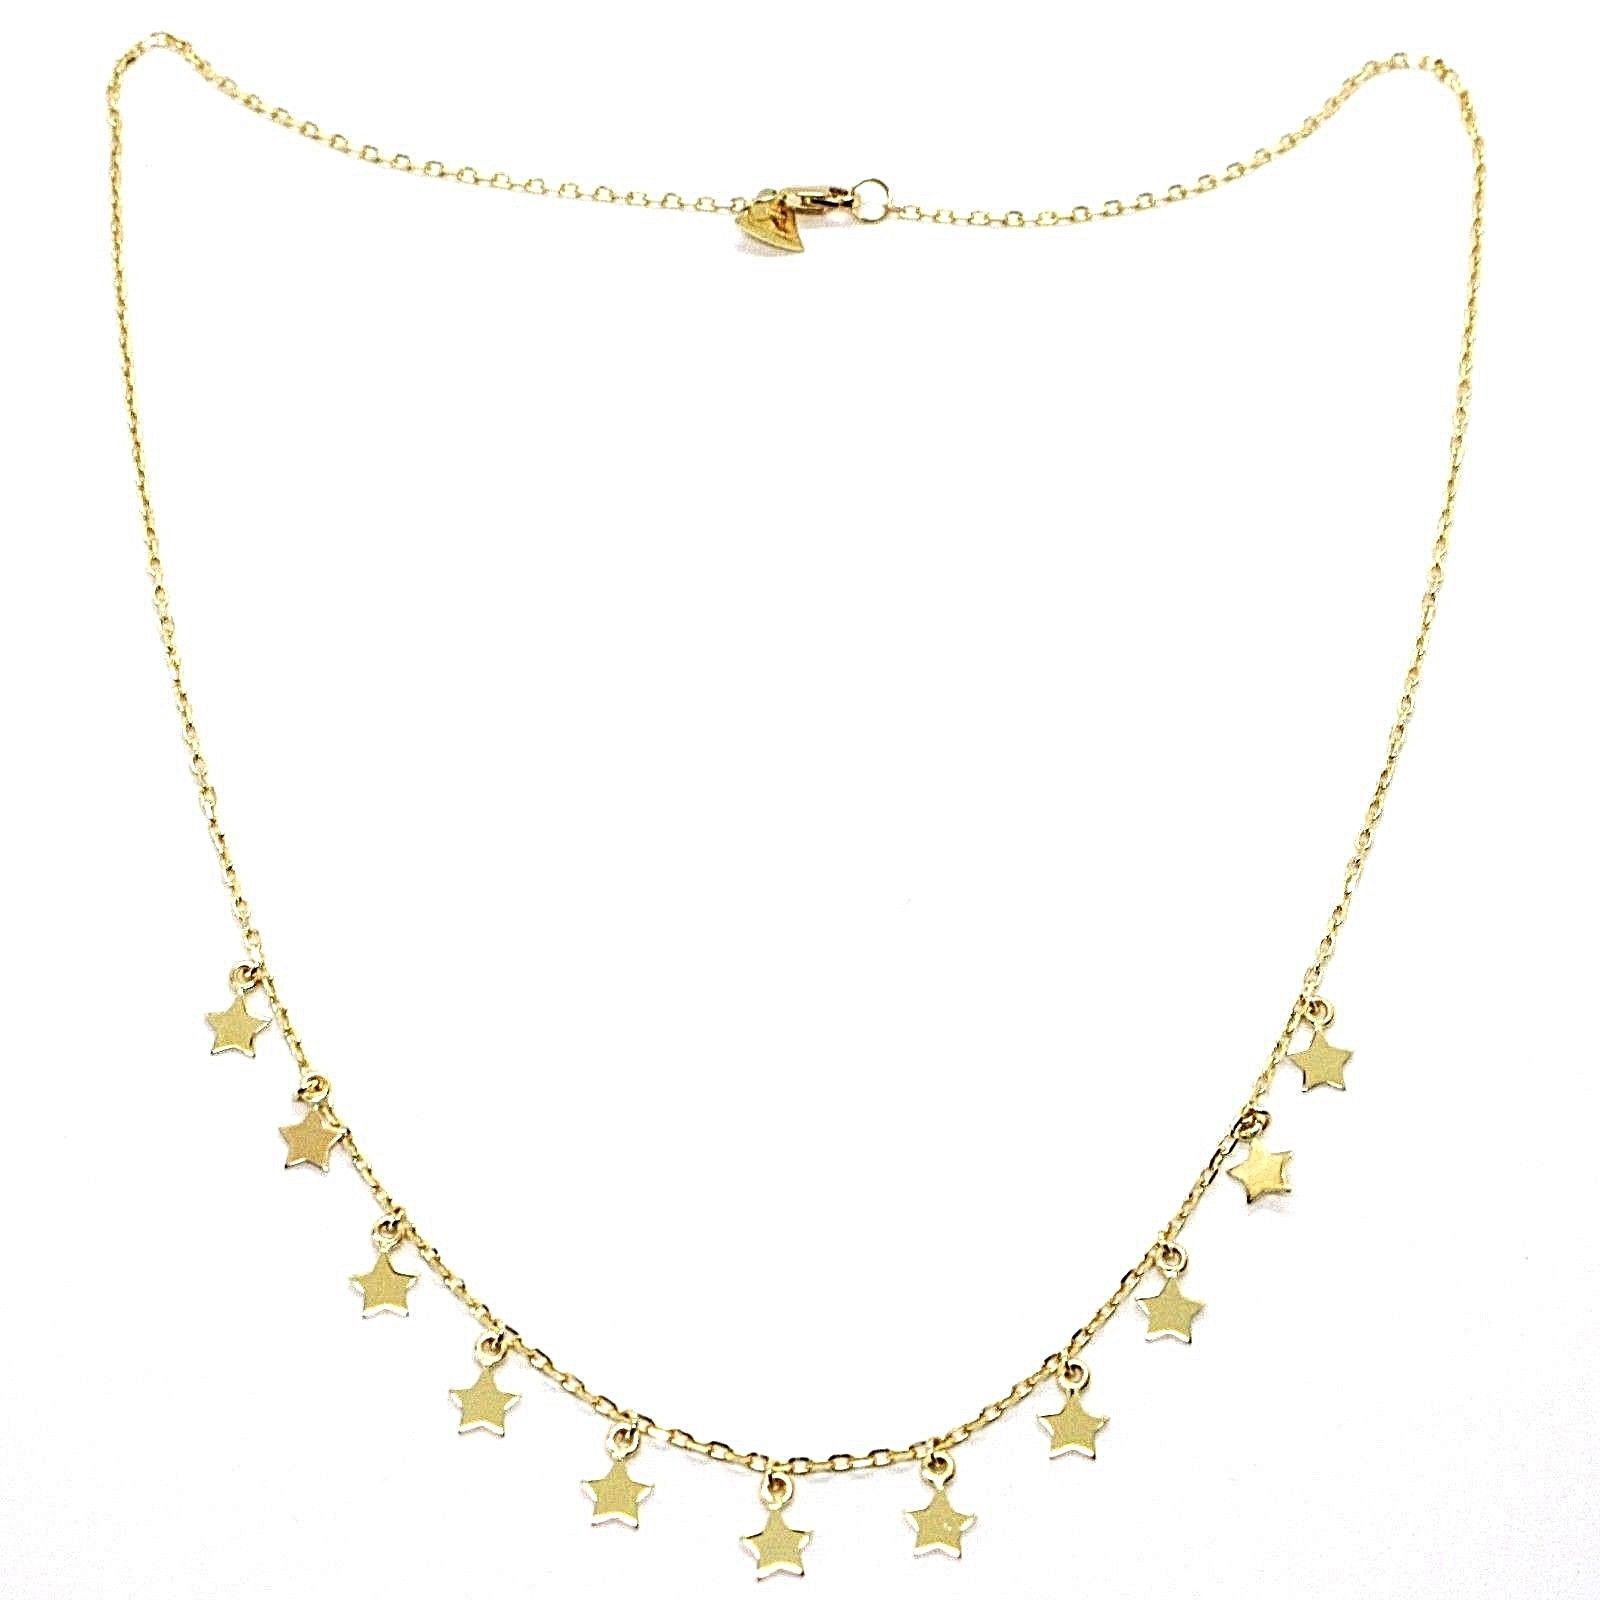 18K YELLOW GOLD NECKLACE WITH PENDANT FLAT STARS STAR, 16.5 INCHES MADE IN ITALY